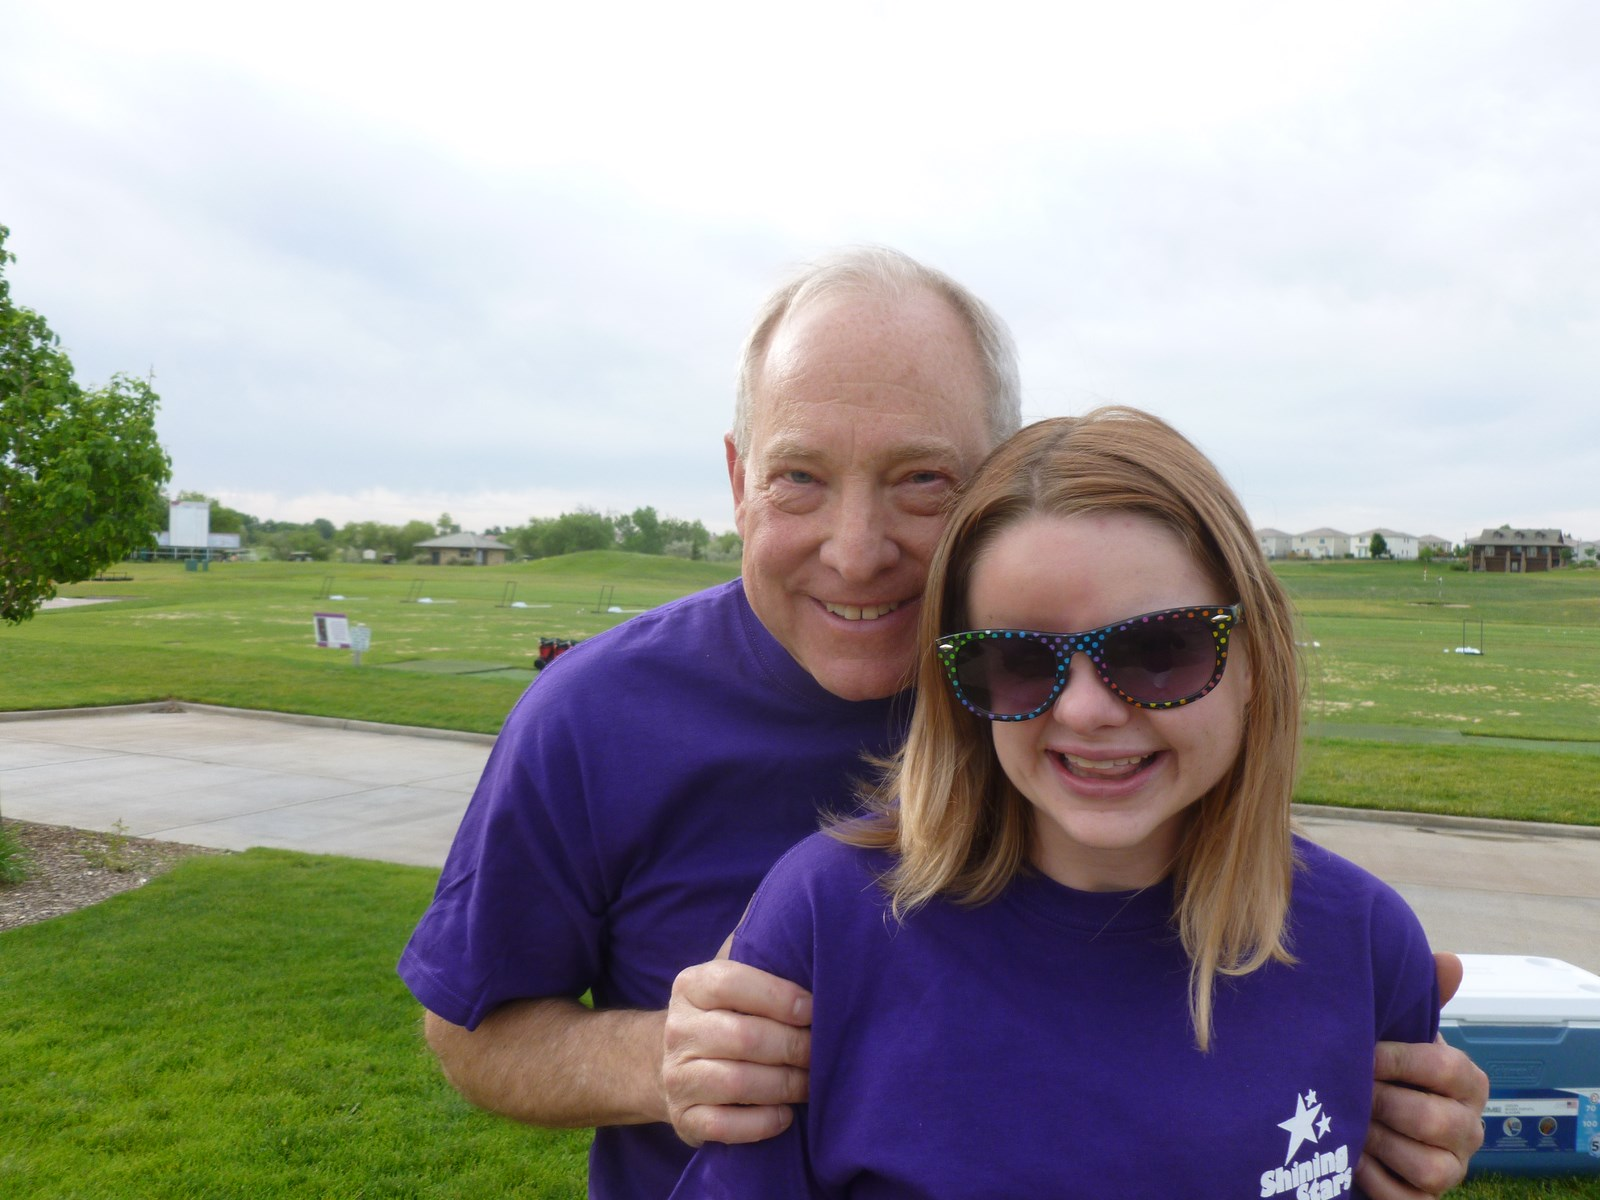 Kat with Shining Stars Medical Director, Dr. Larry McCleary